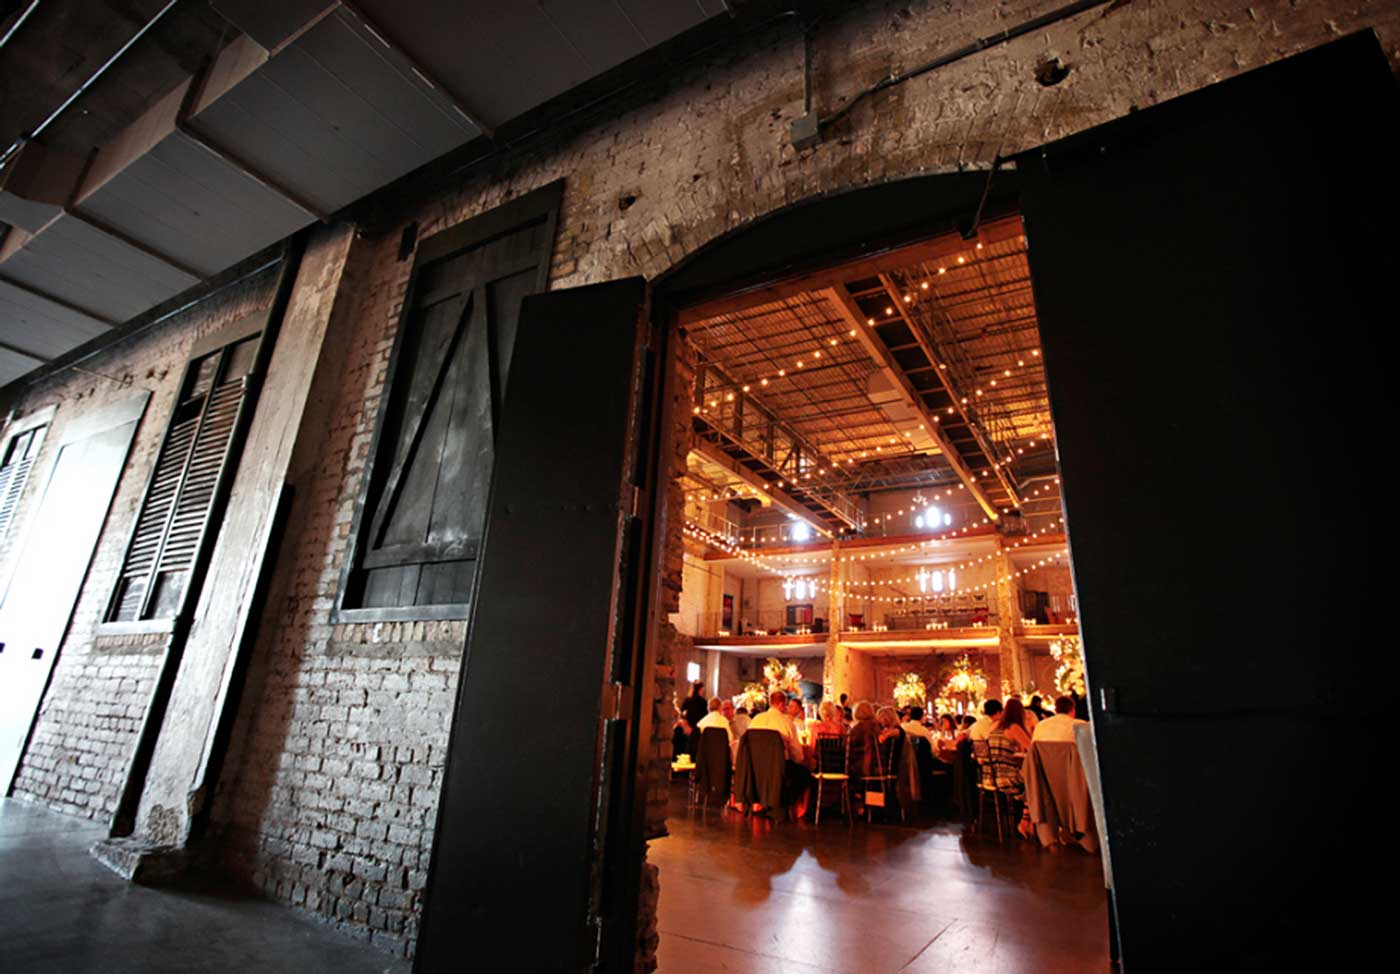 The Top 5 Questions You MUST Ask When Doing a Venue Tour